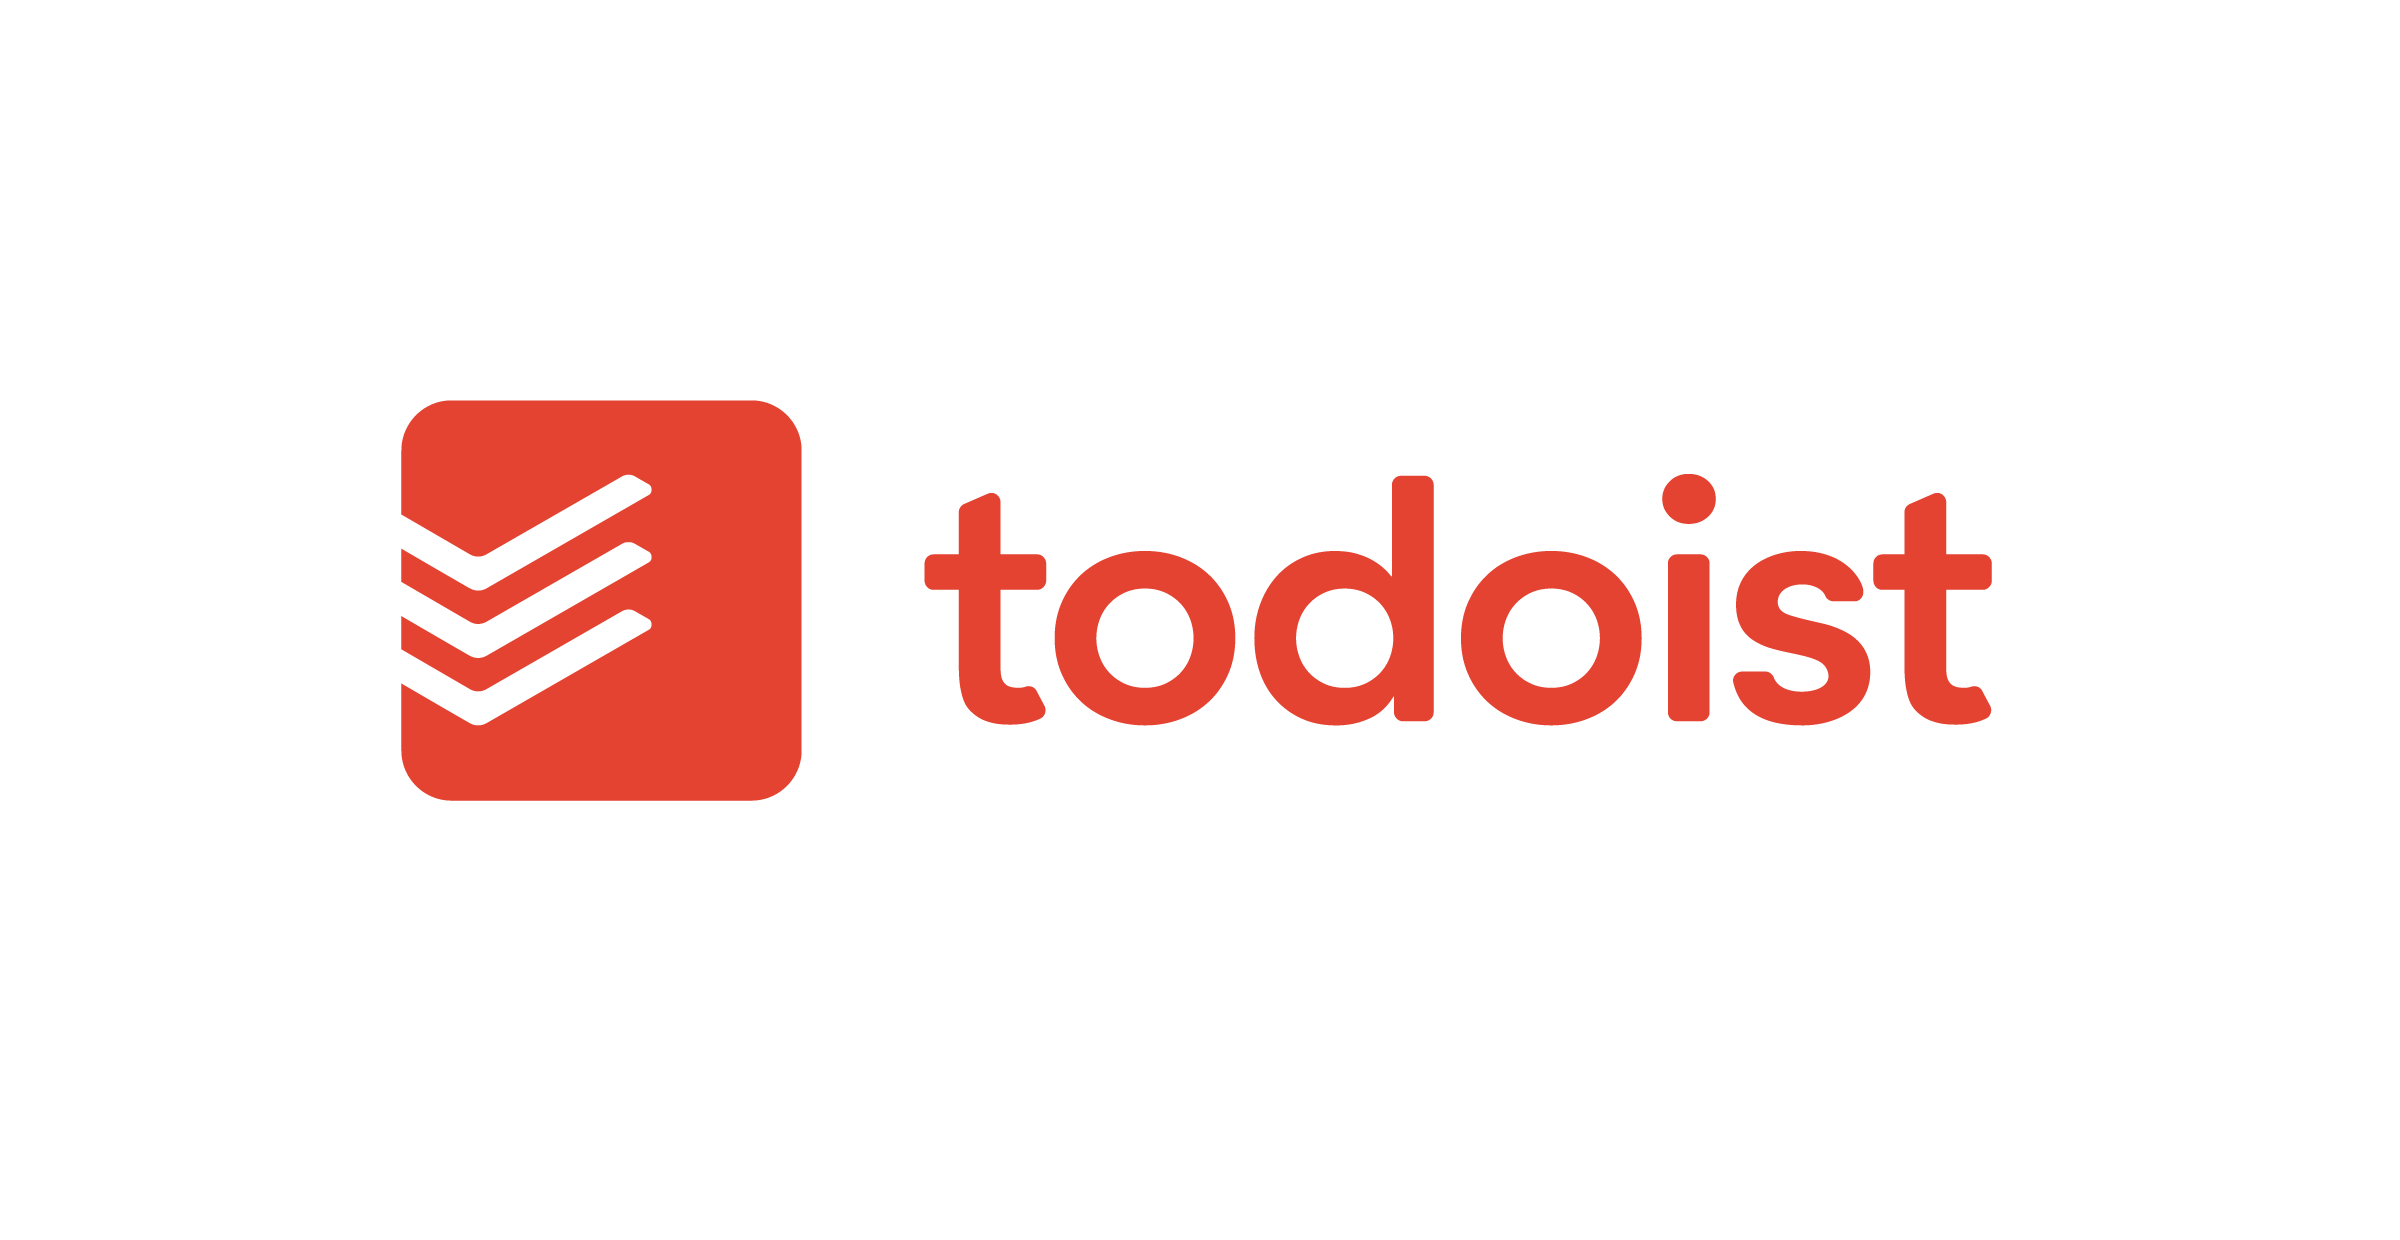 Image of the Todoist logo